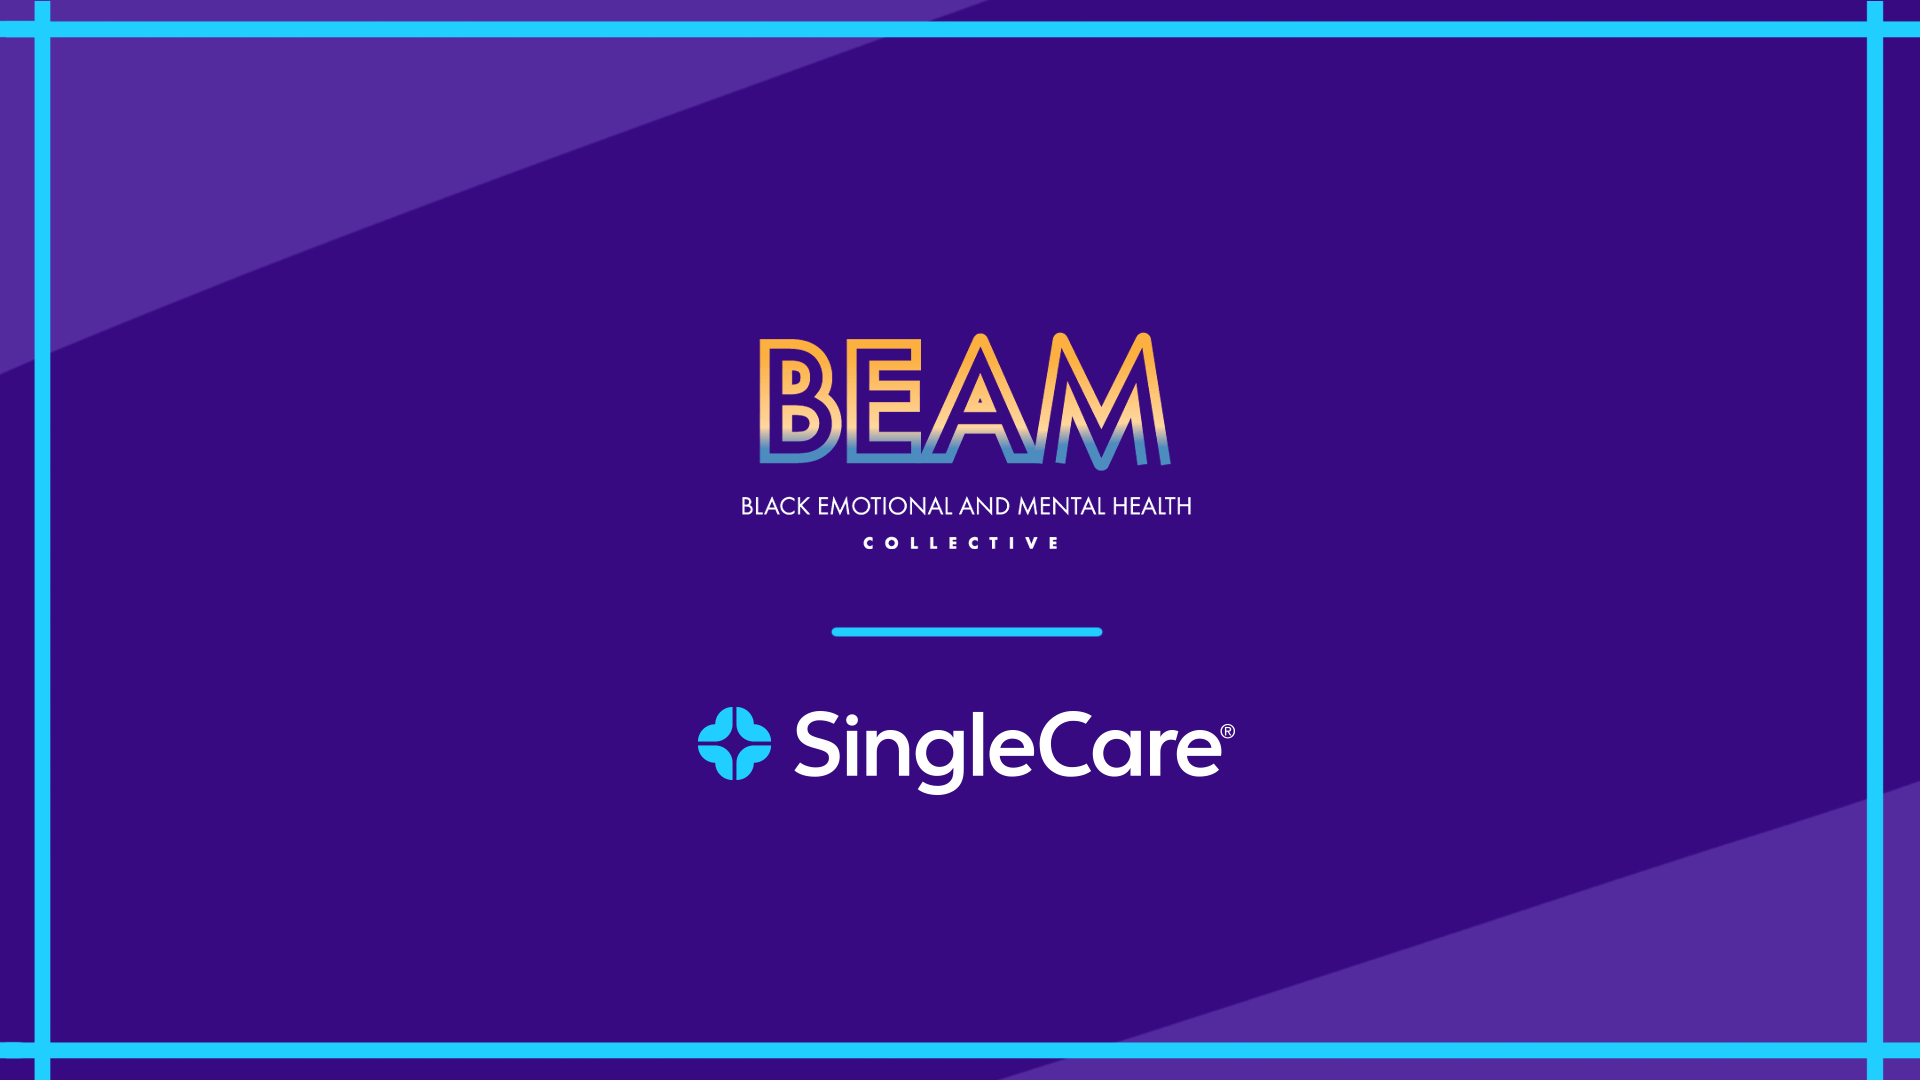 SingleCare celebrates Black History Month and supports non-profit BEAM